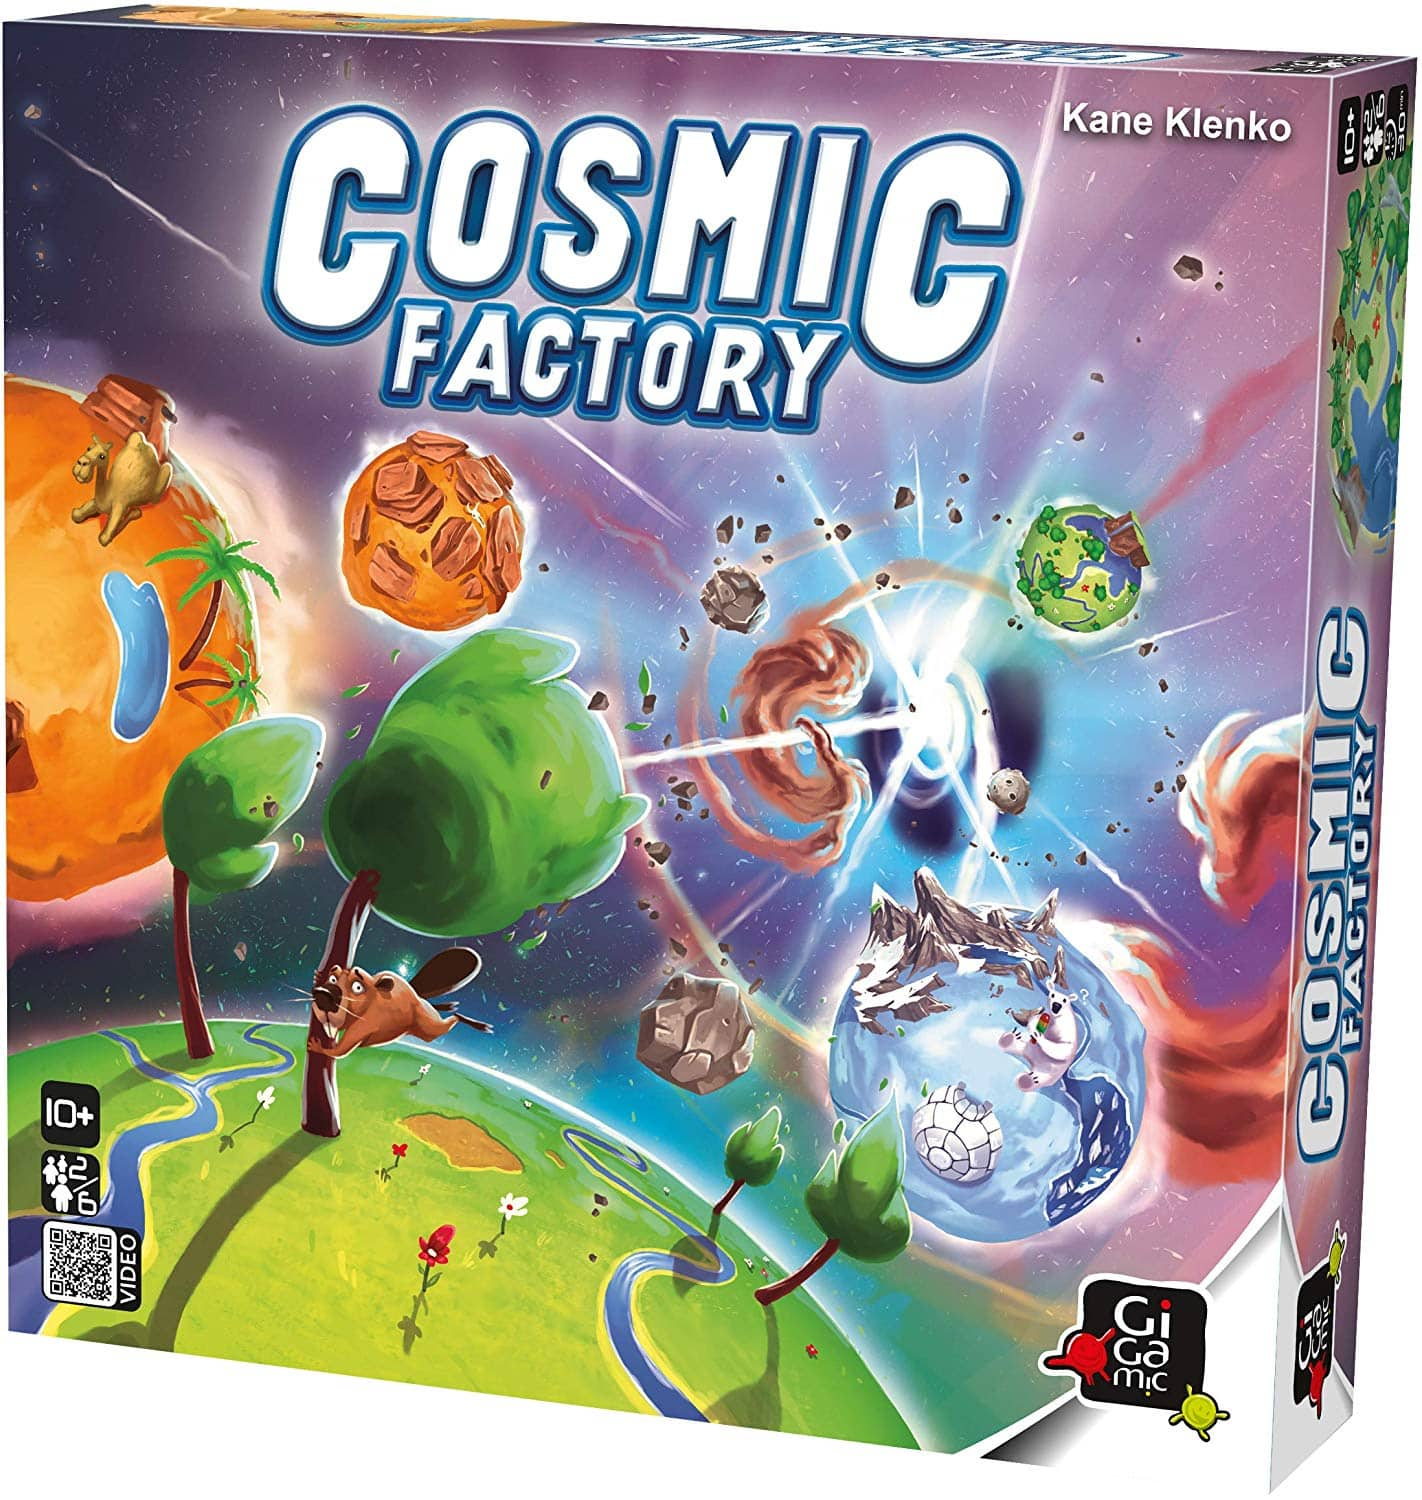 Gigamic - Cosmic Factory - $14.04 at Amazon + free shipping with prime